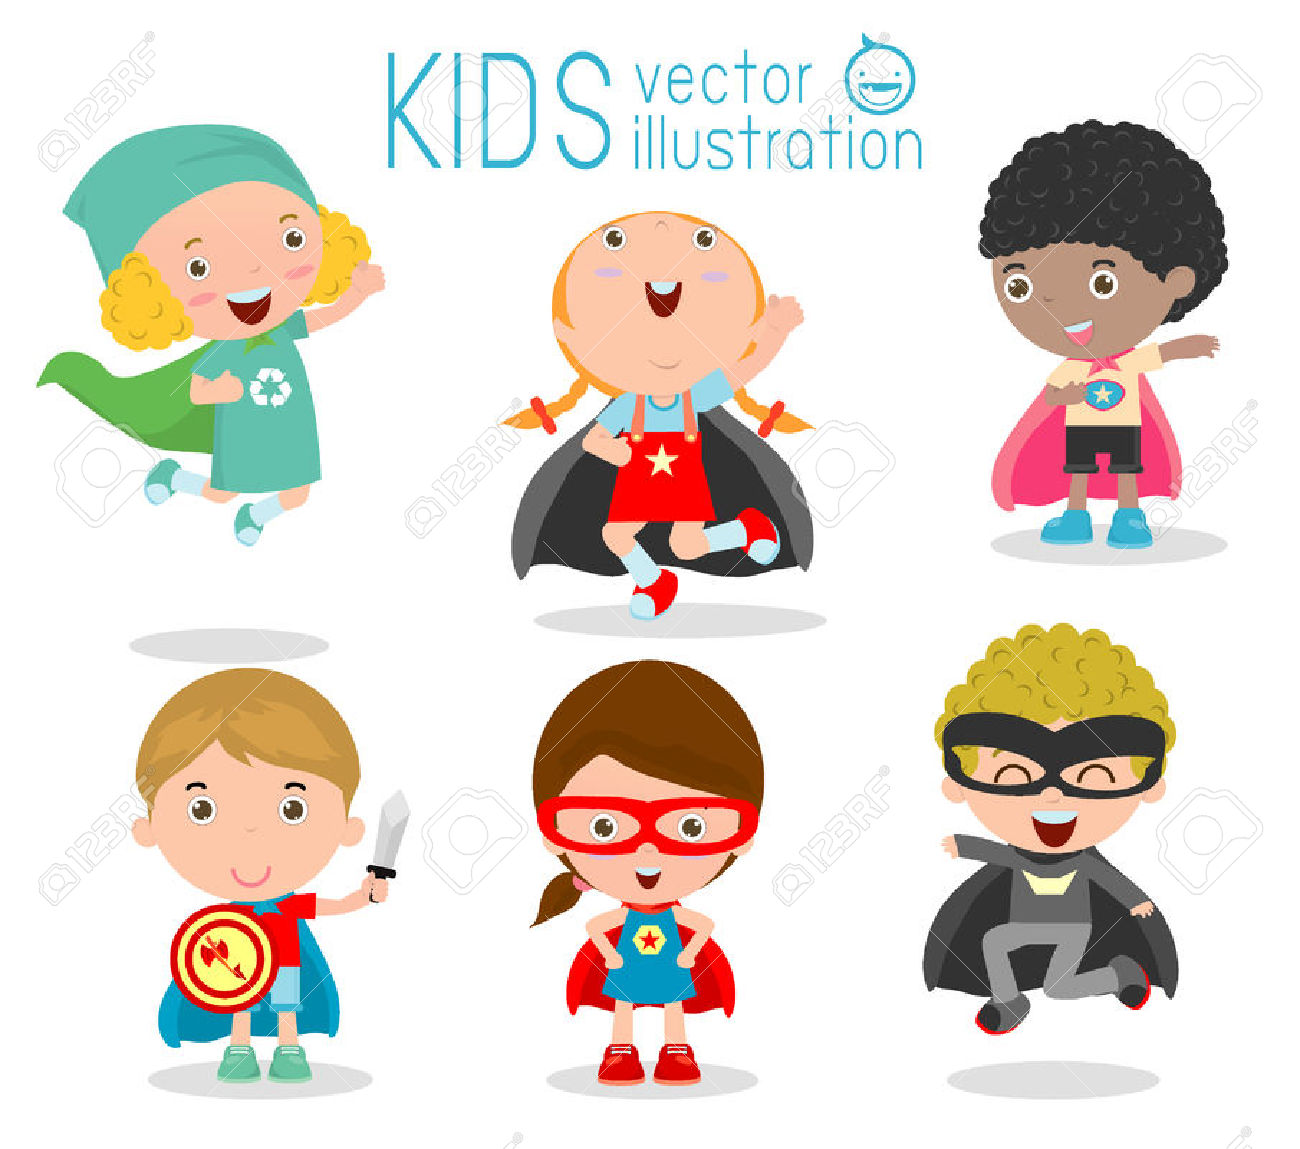 Kids character costumes clipart svg library download Kids With Superhero Costumes Set, Kids In Superhero Costume ... svg library download